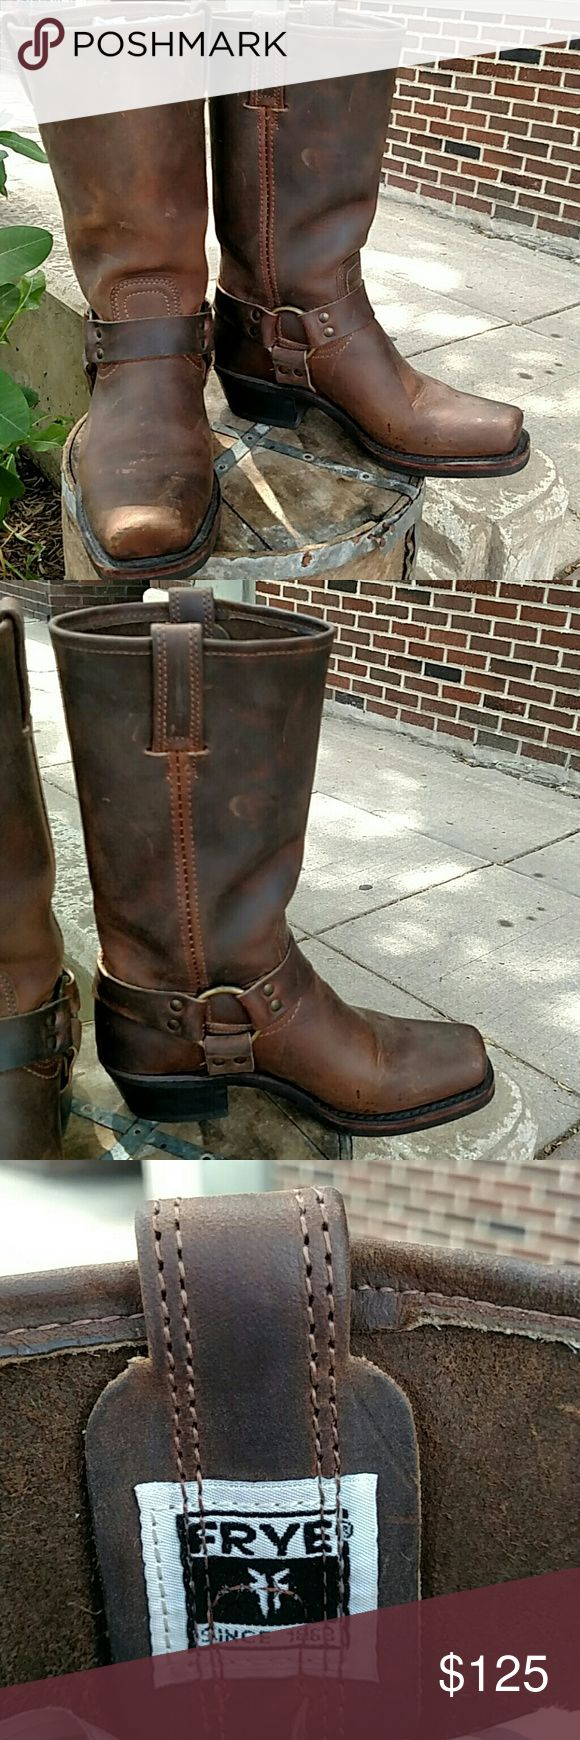 Frye Women's Riding Boots size 7.5 Dark brown leather with inner and outer brass rings and straps Knicks and scuffs on leather add character to boot sole in great condition worn 1-2x Front flat toe Frye Shoes Heeled Boots